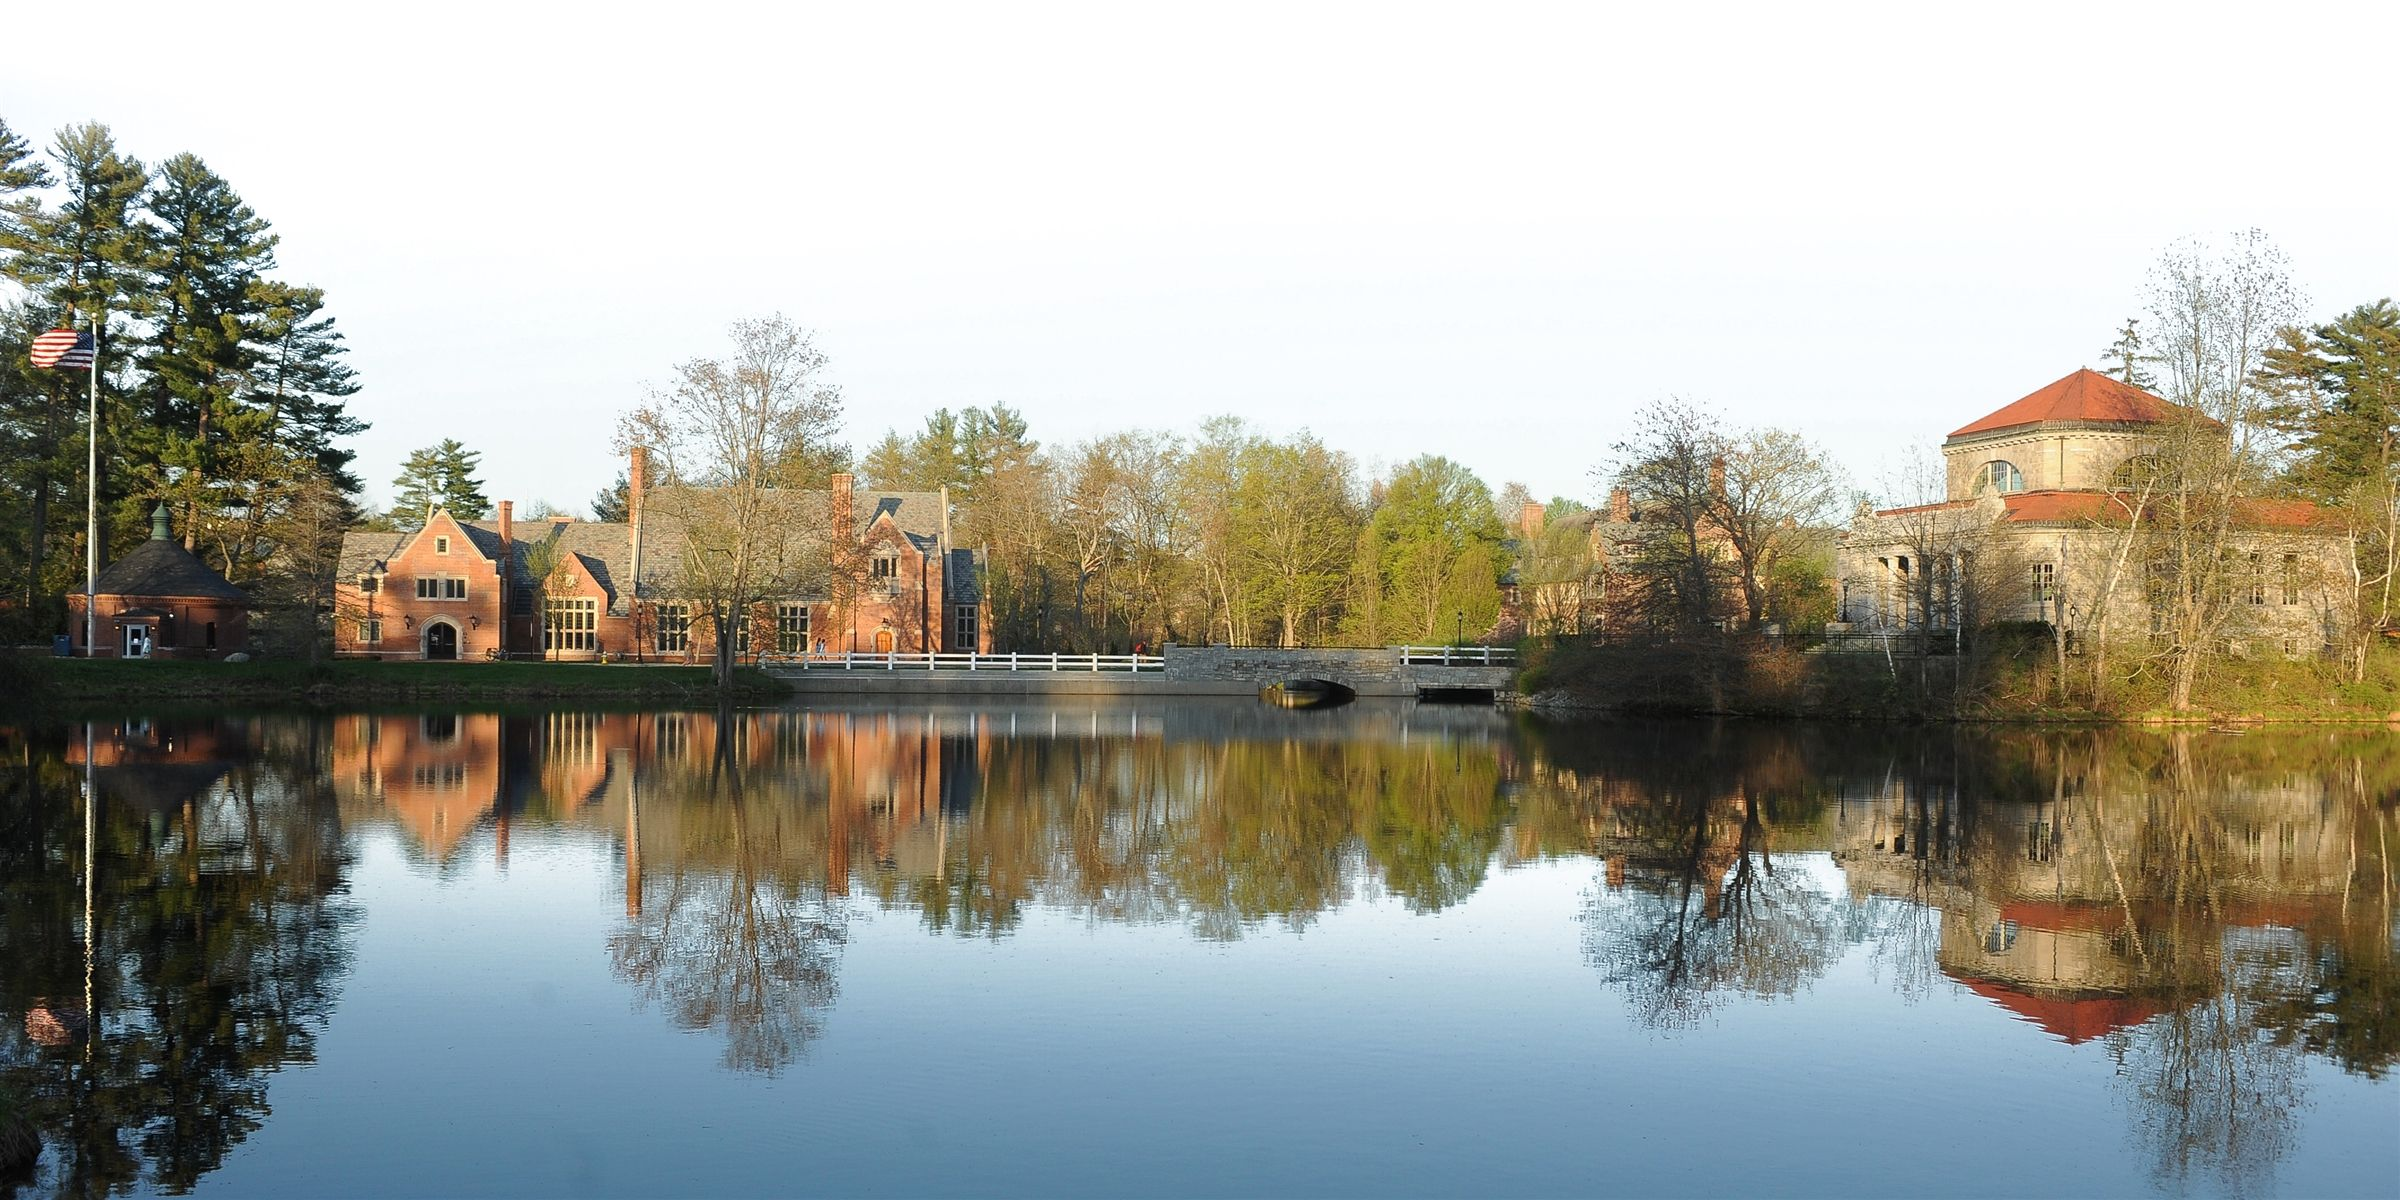 Campus and reflection in the still pond